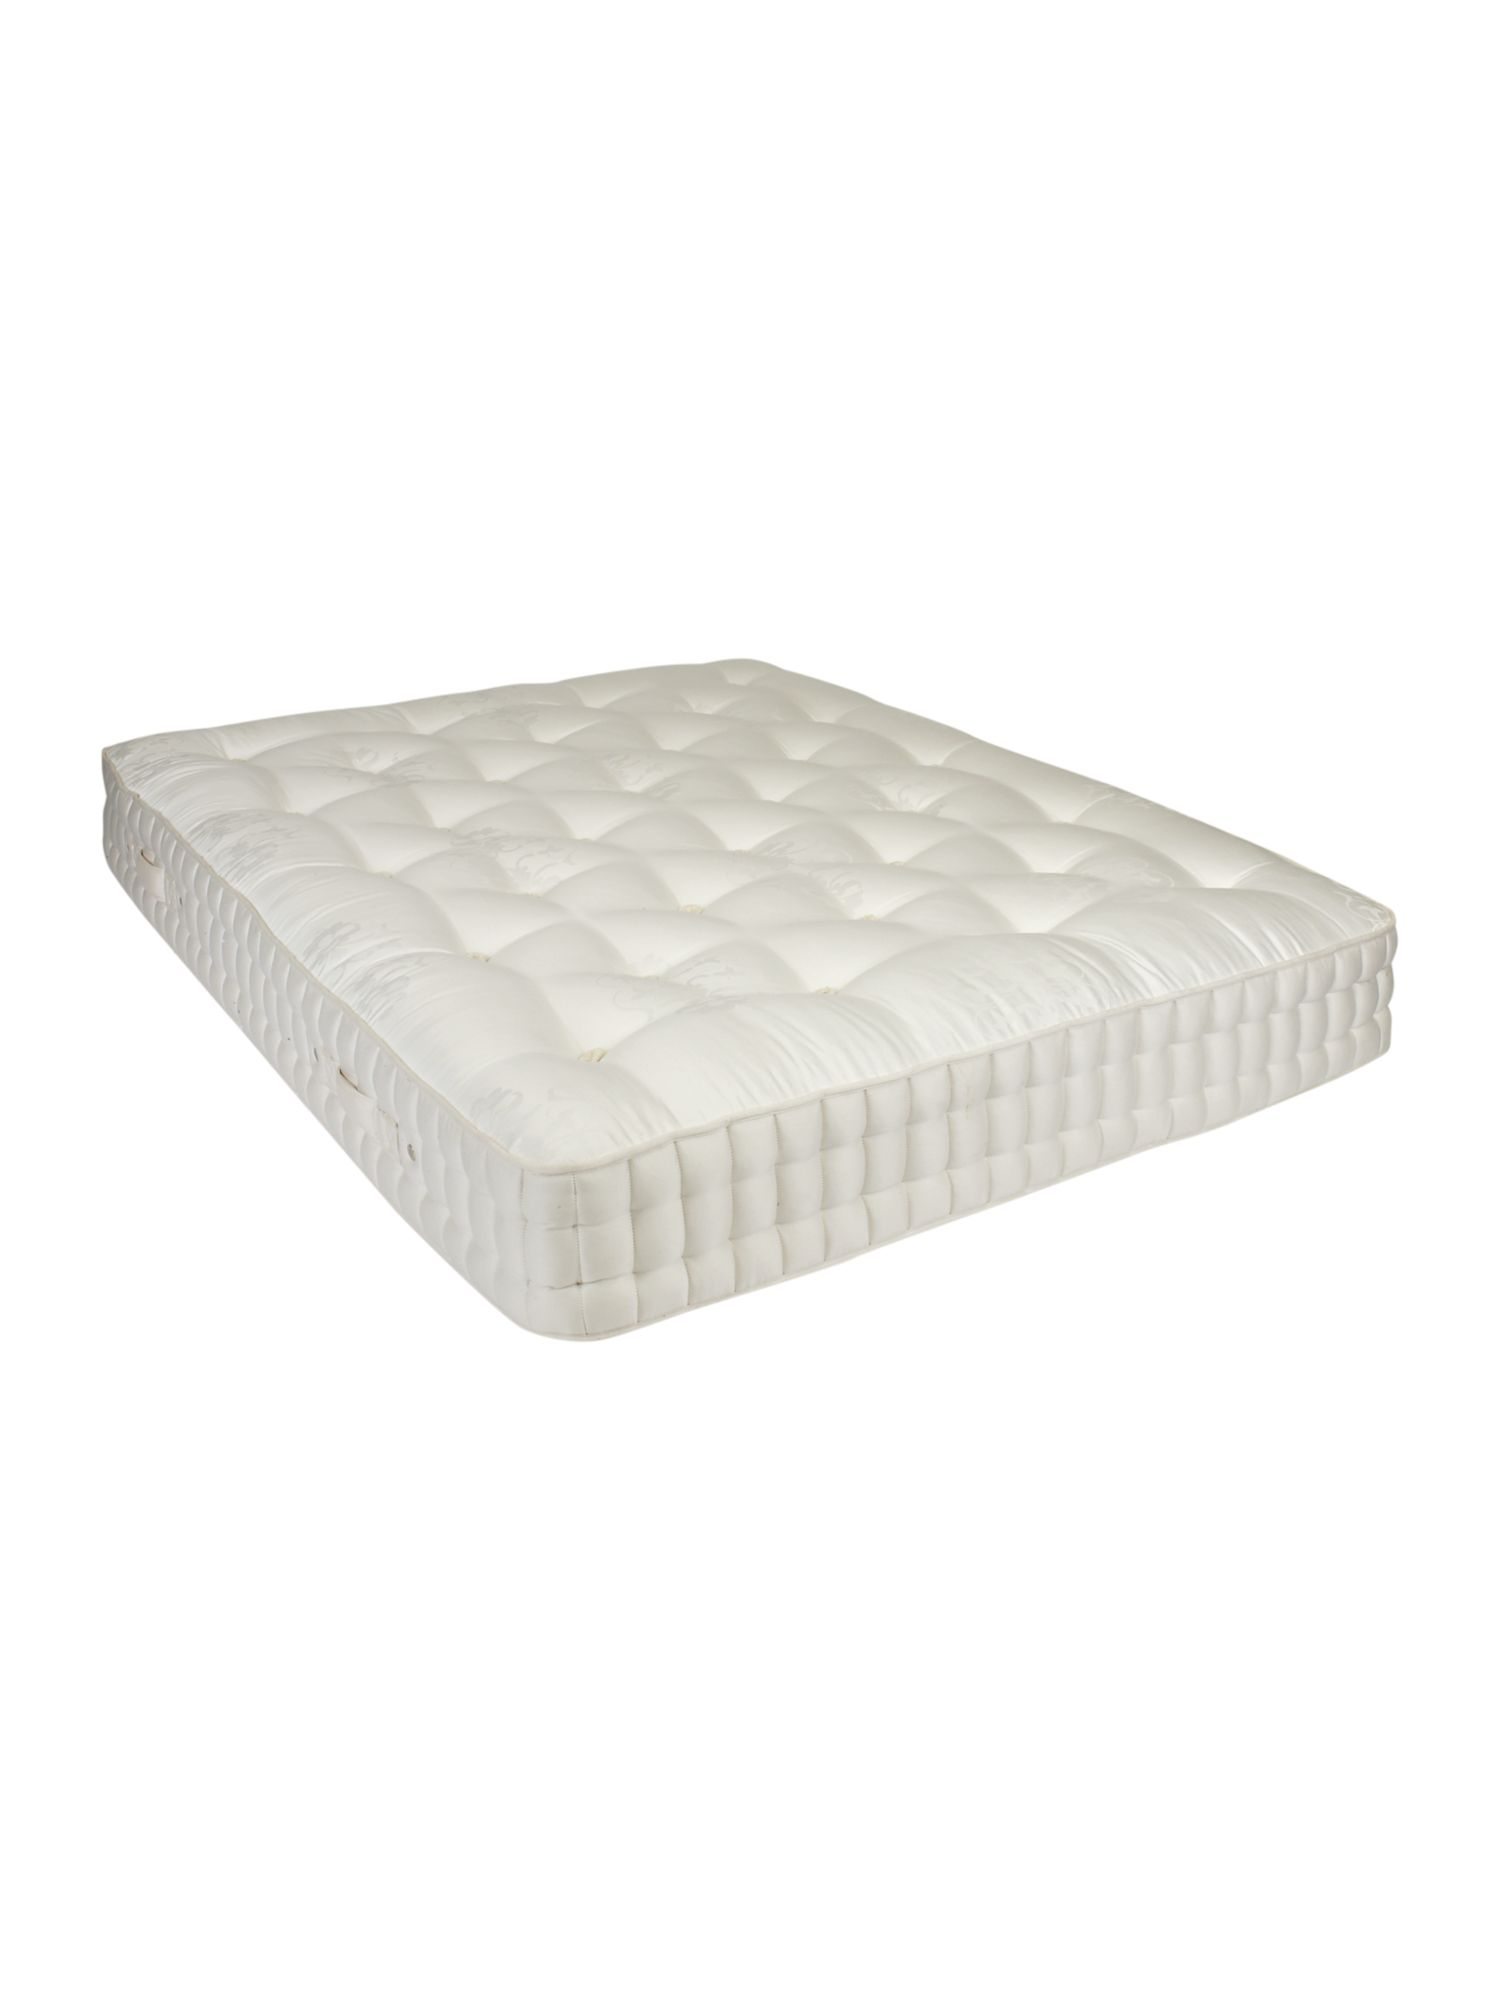 Bedale mattress range